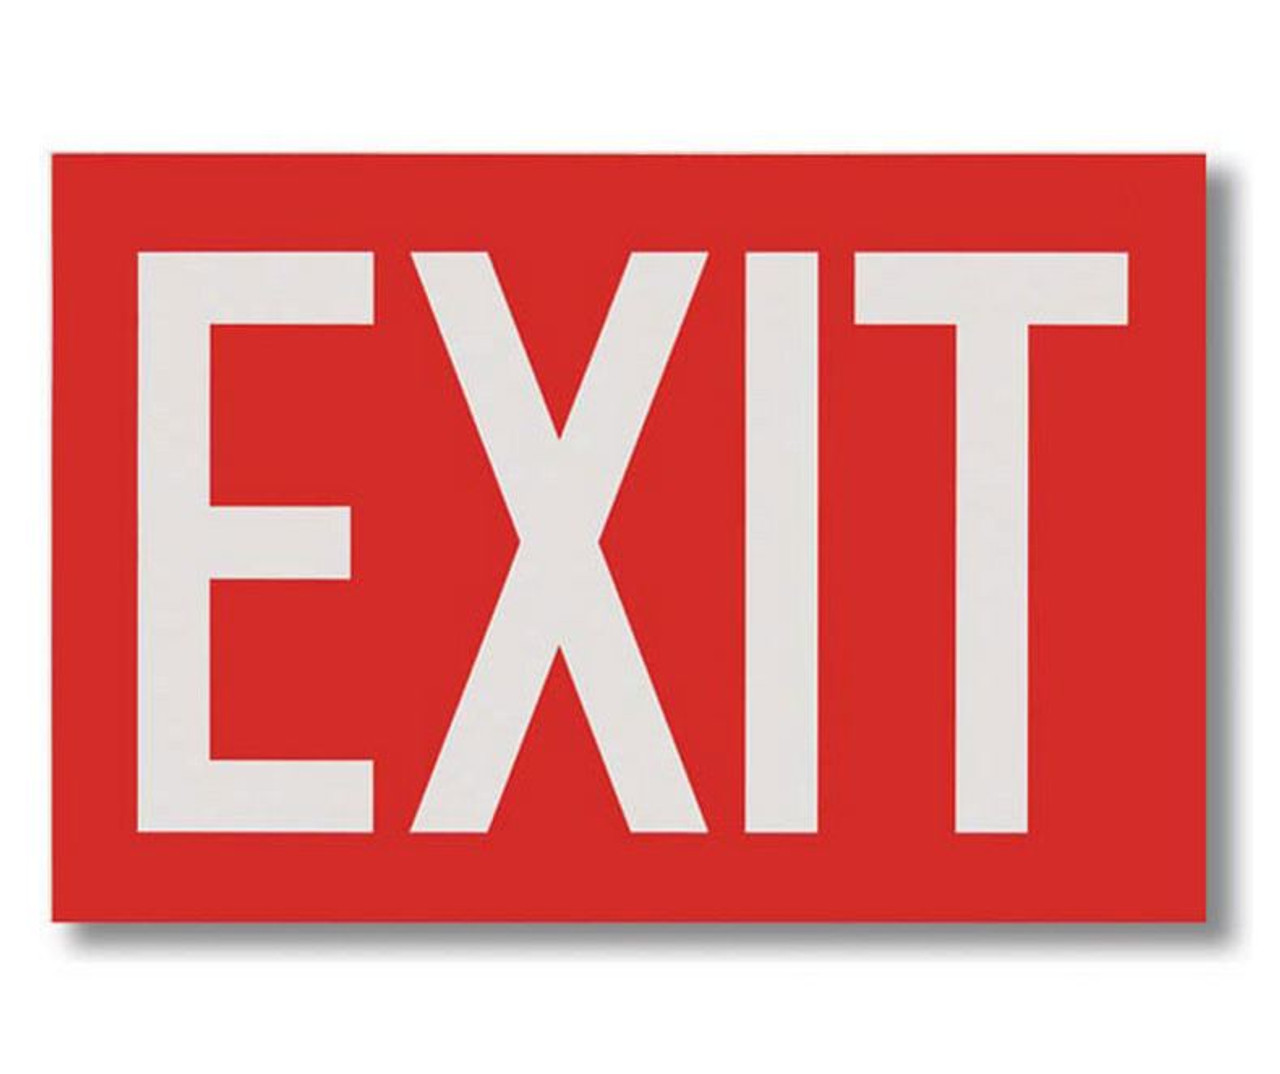 "BL112 Self-adhesive Vinyl Red Exit Sign 12"" x 8"""